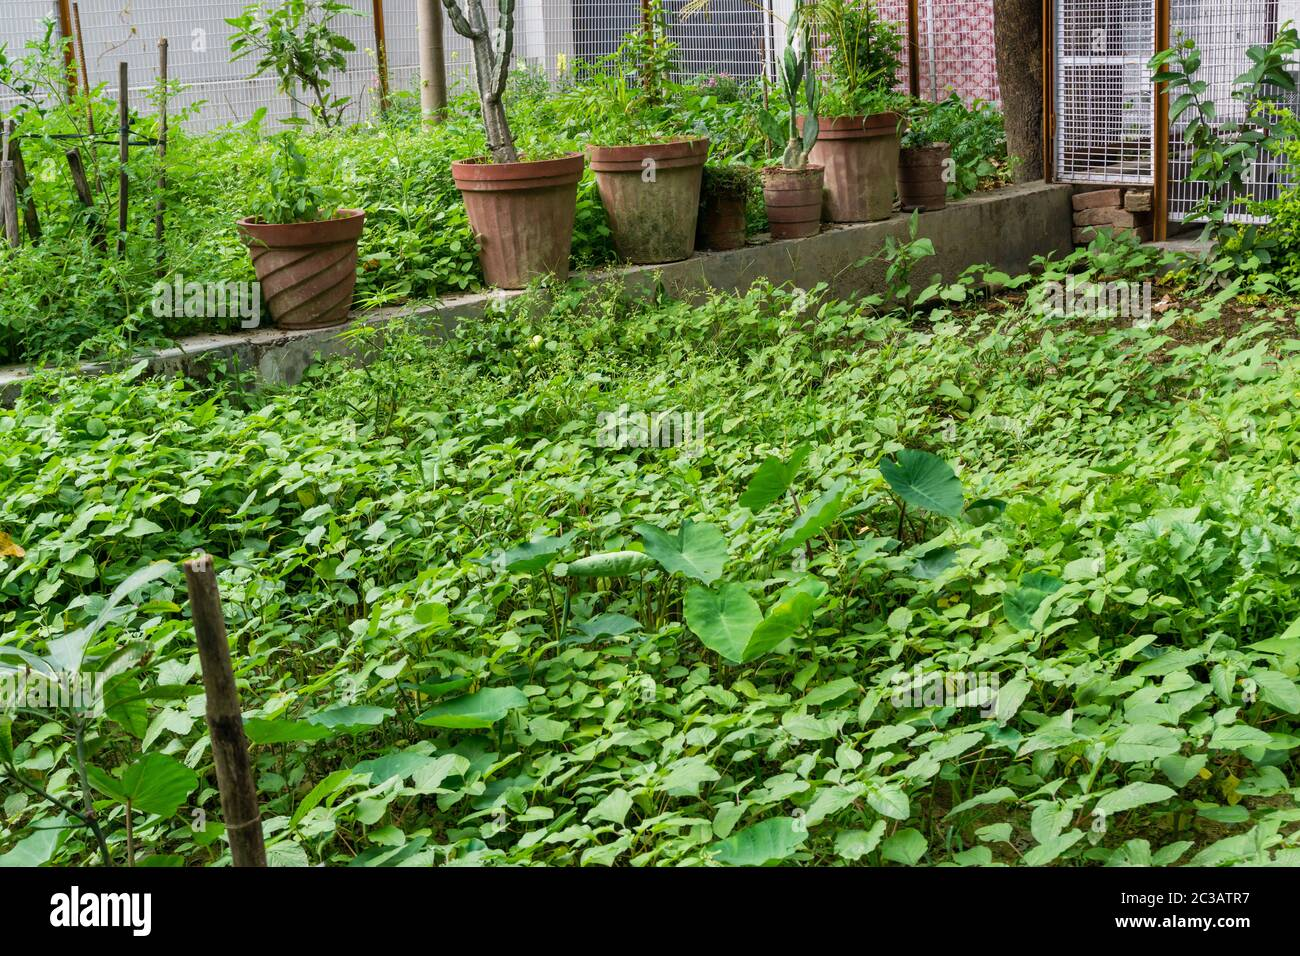 Home India Garden High Resolution Stock Photography And Images Alamy